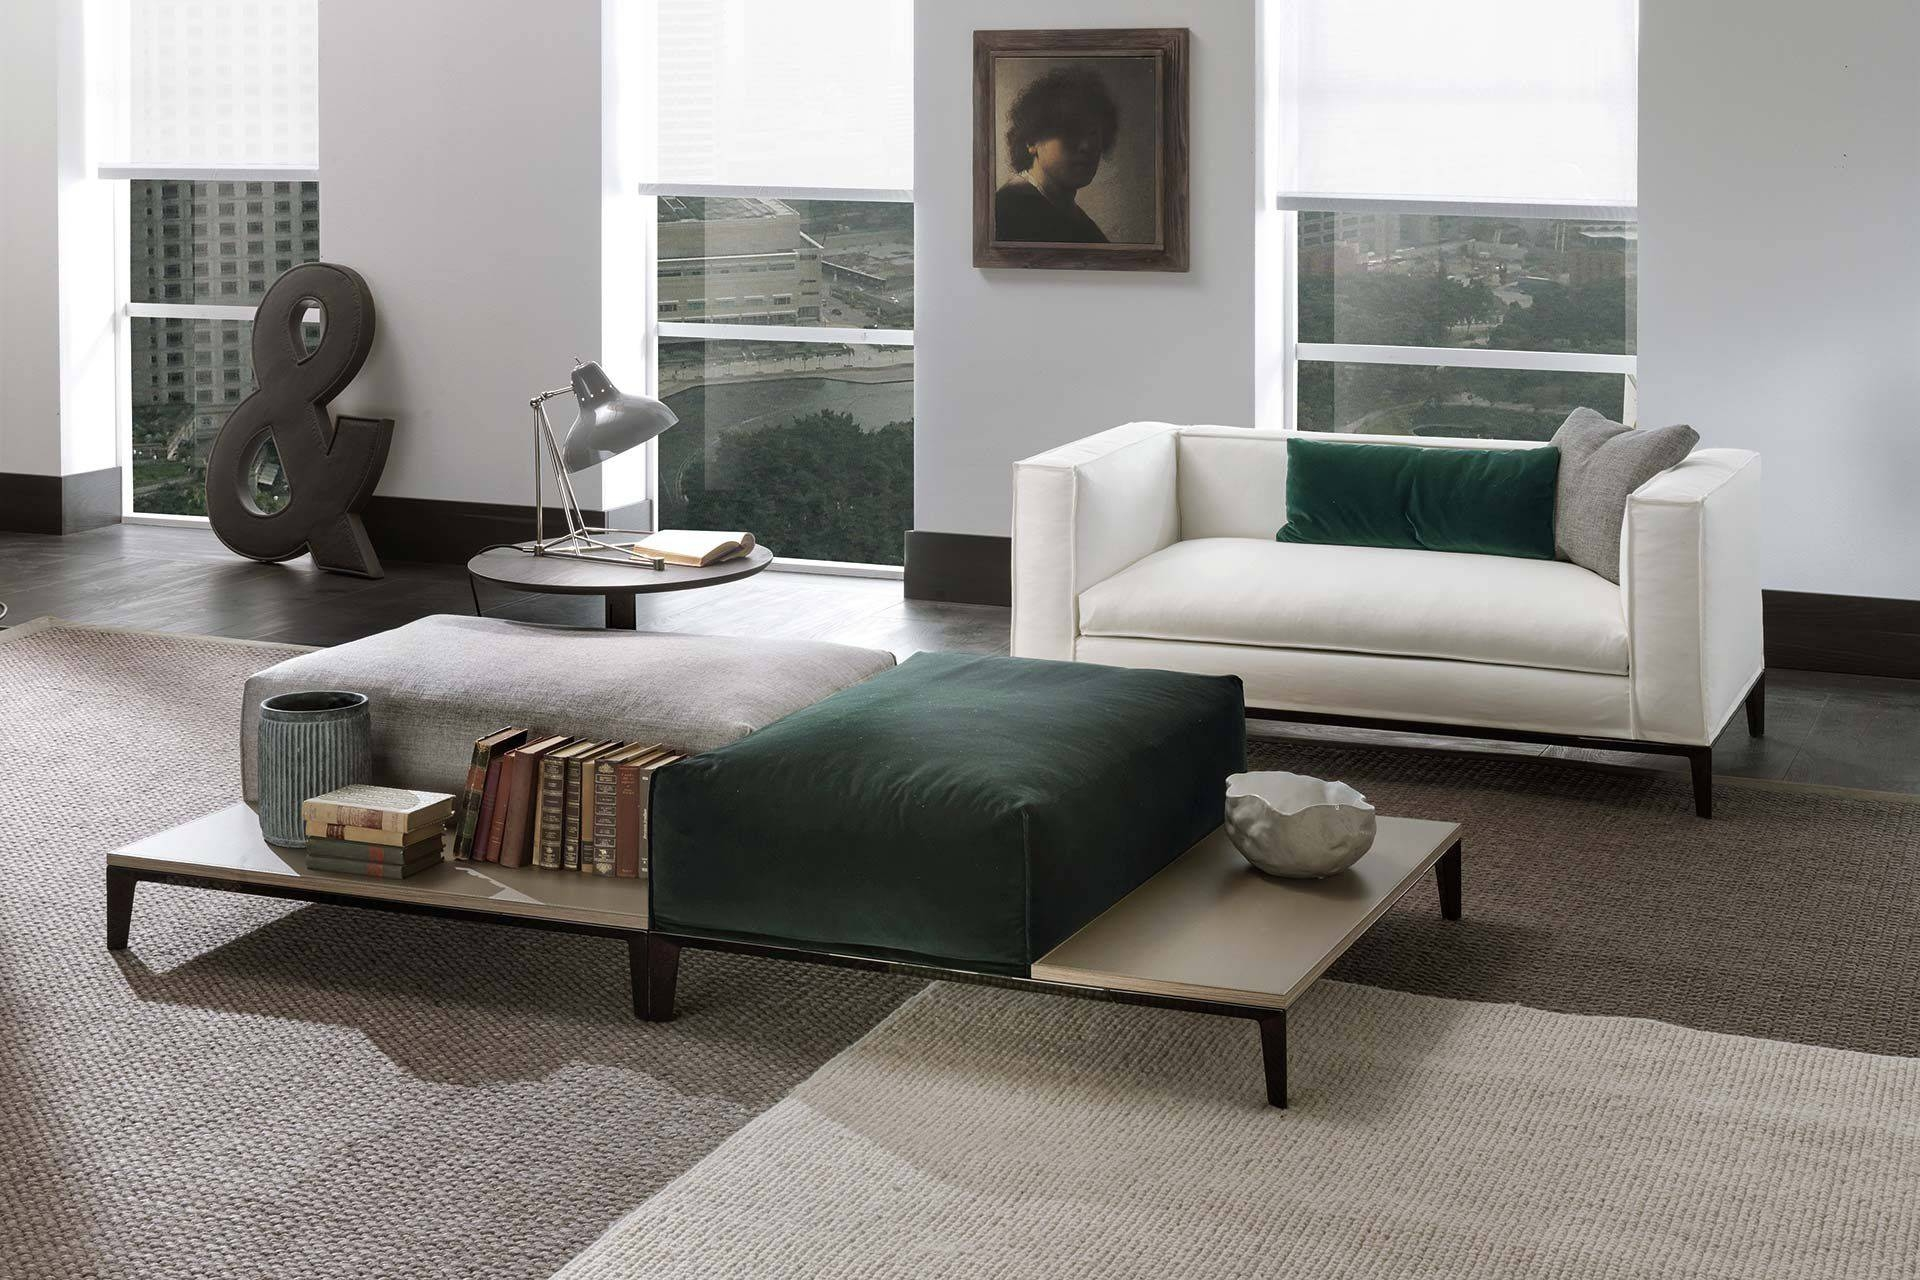 Contemporary Footrest / Fabric / Leather / Wooden - Taylor with regard to Coffee Table Footrests (Image 15 of 30)